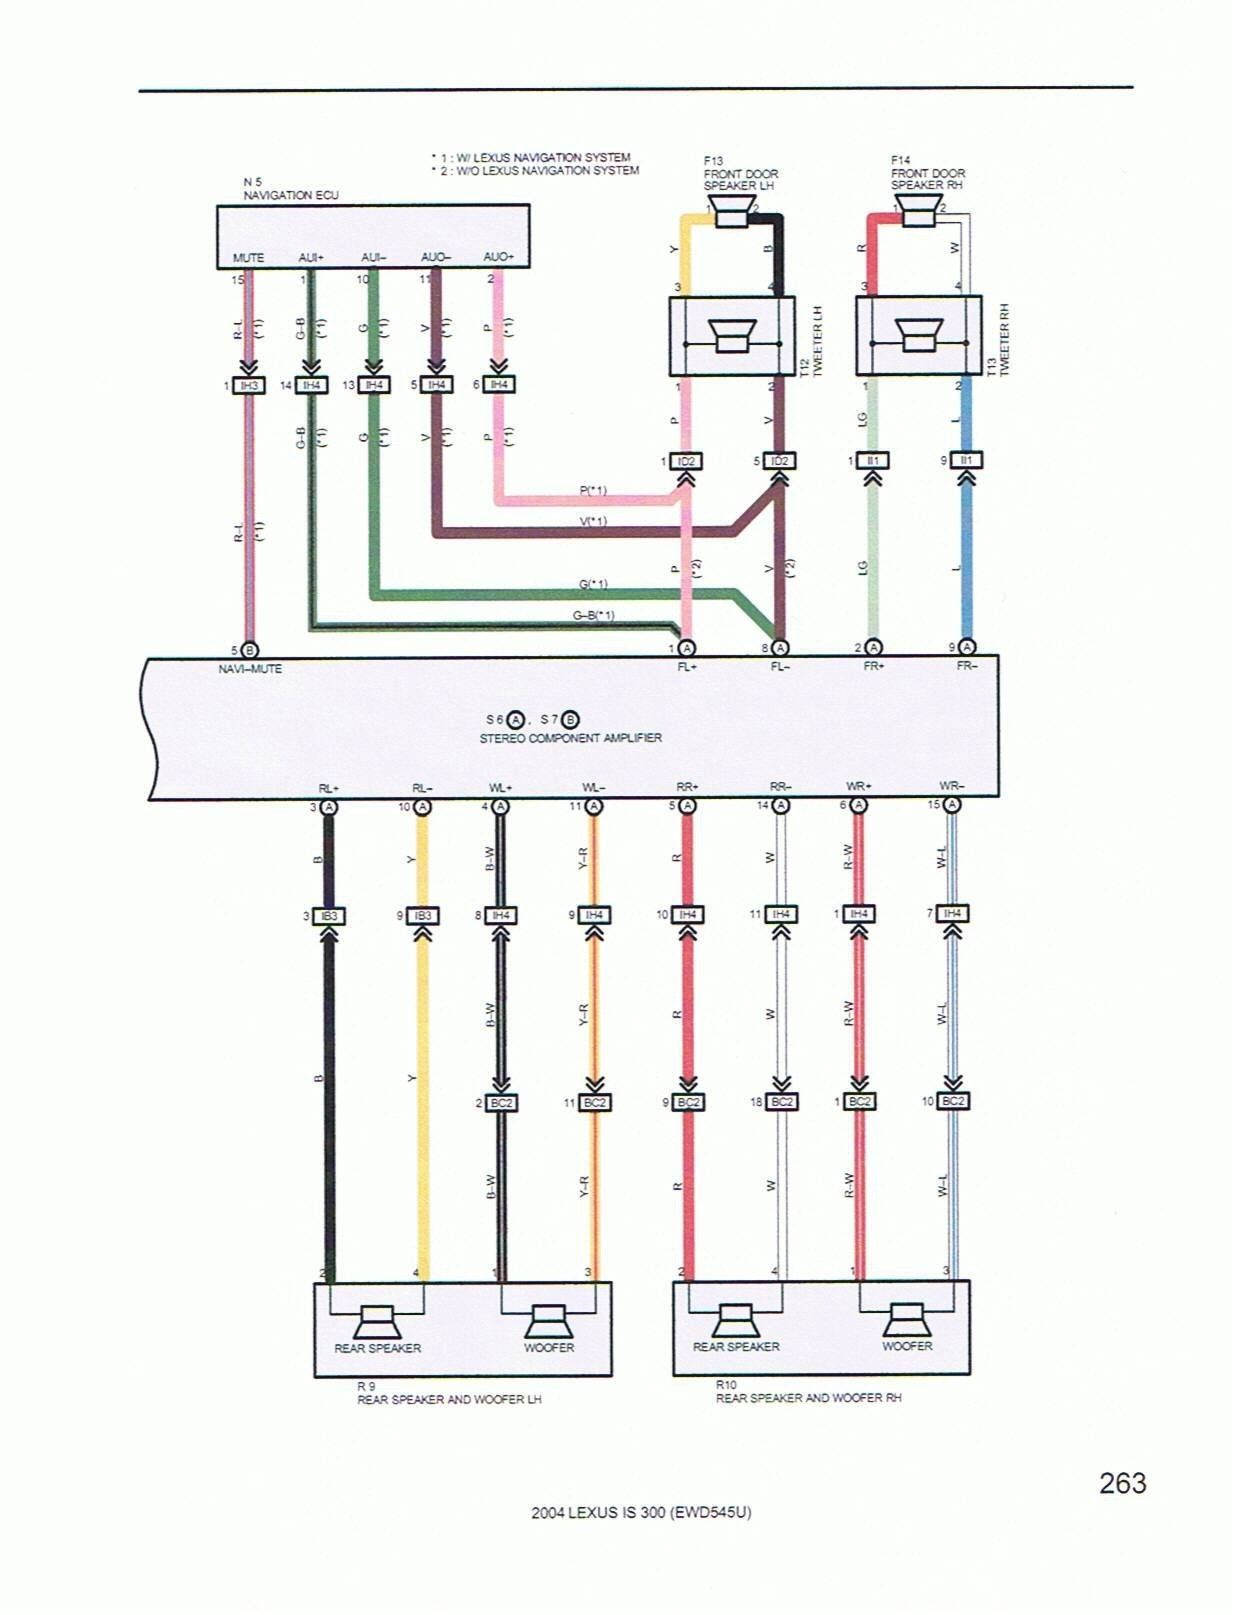 [SCHEMATICS_44OR]  45 Awesome Vw Radio Wiring Diagram in 2020 | Vw jetta, Volkswagen jetta, Vw  golf | 2000 Vw Beetle Radio Wiring Diagram |  | Pinterest